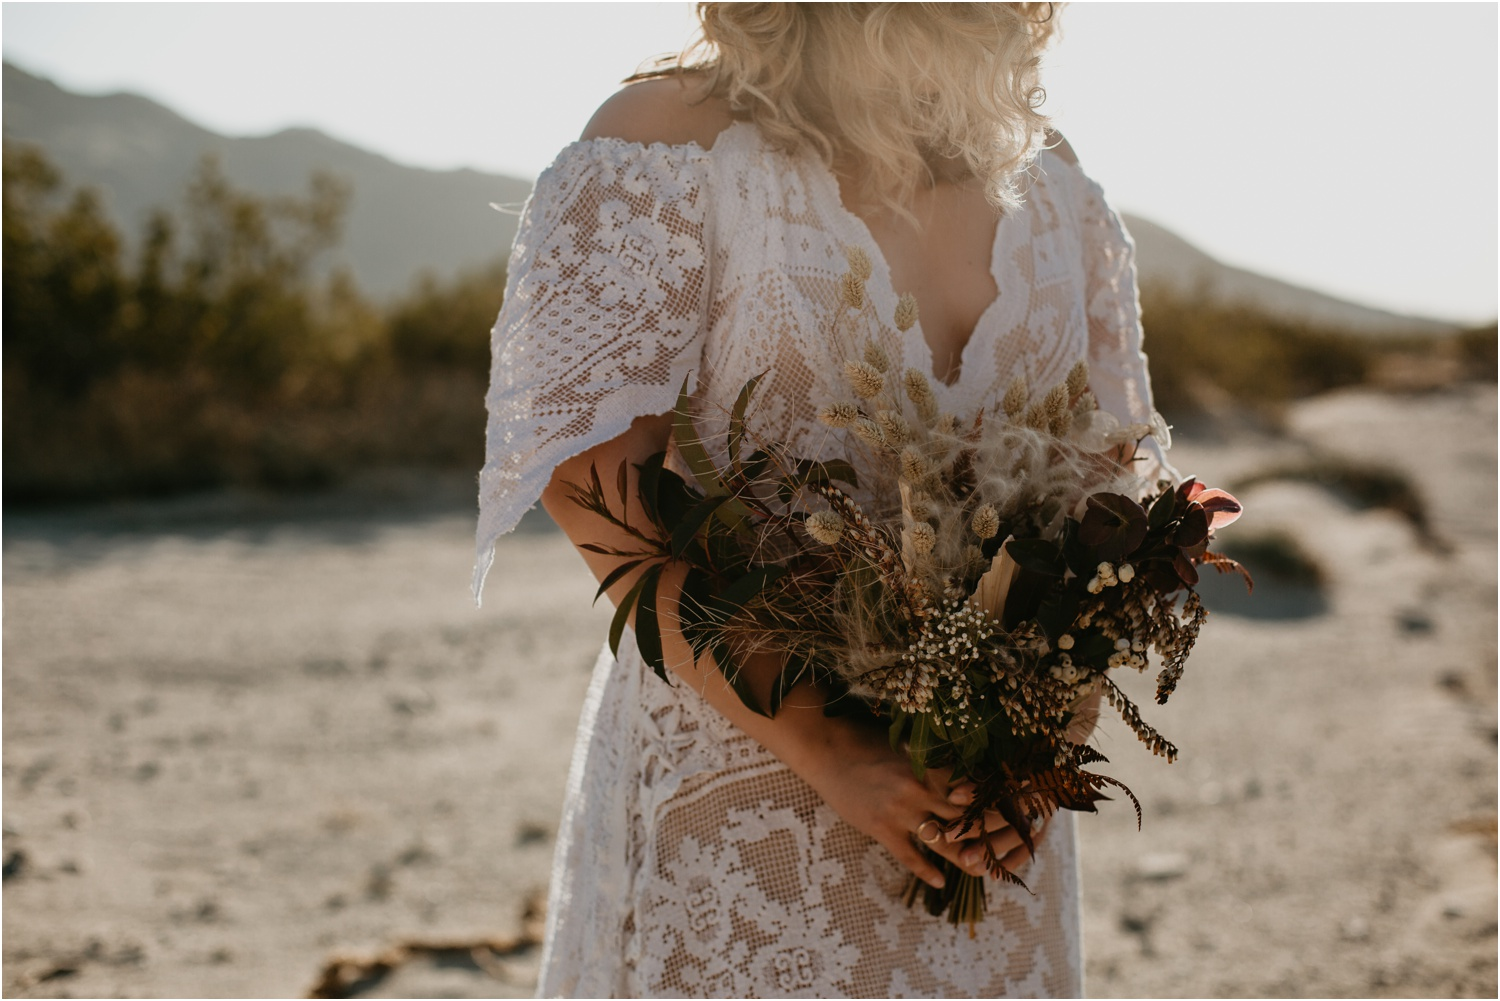 Bohemian Elopement inspiration,Boho wedding dress,British Columbia Elopement Photographer,Canadian Travelling Elopement Photographer,Courtney Jess Photography,Elopement Photographer,Kimberley BC elopement,Kimberley elopement photographer,Palm Springs Elopement,british columbia elopement,palm springs destination wedding.,palm springs wedding,wild hearted photography,